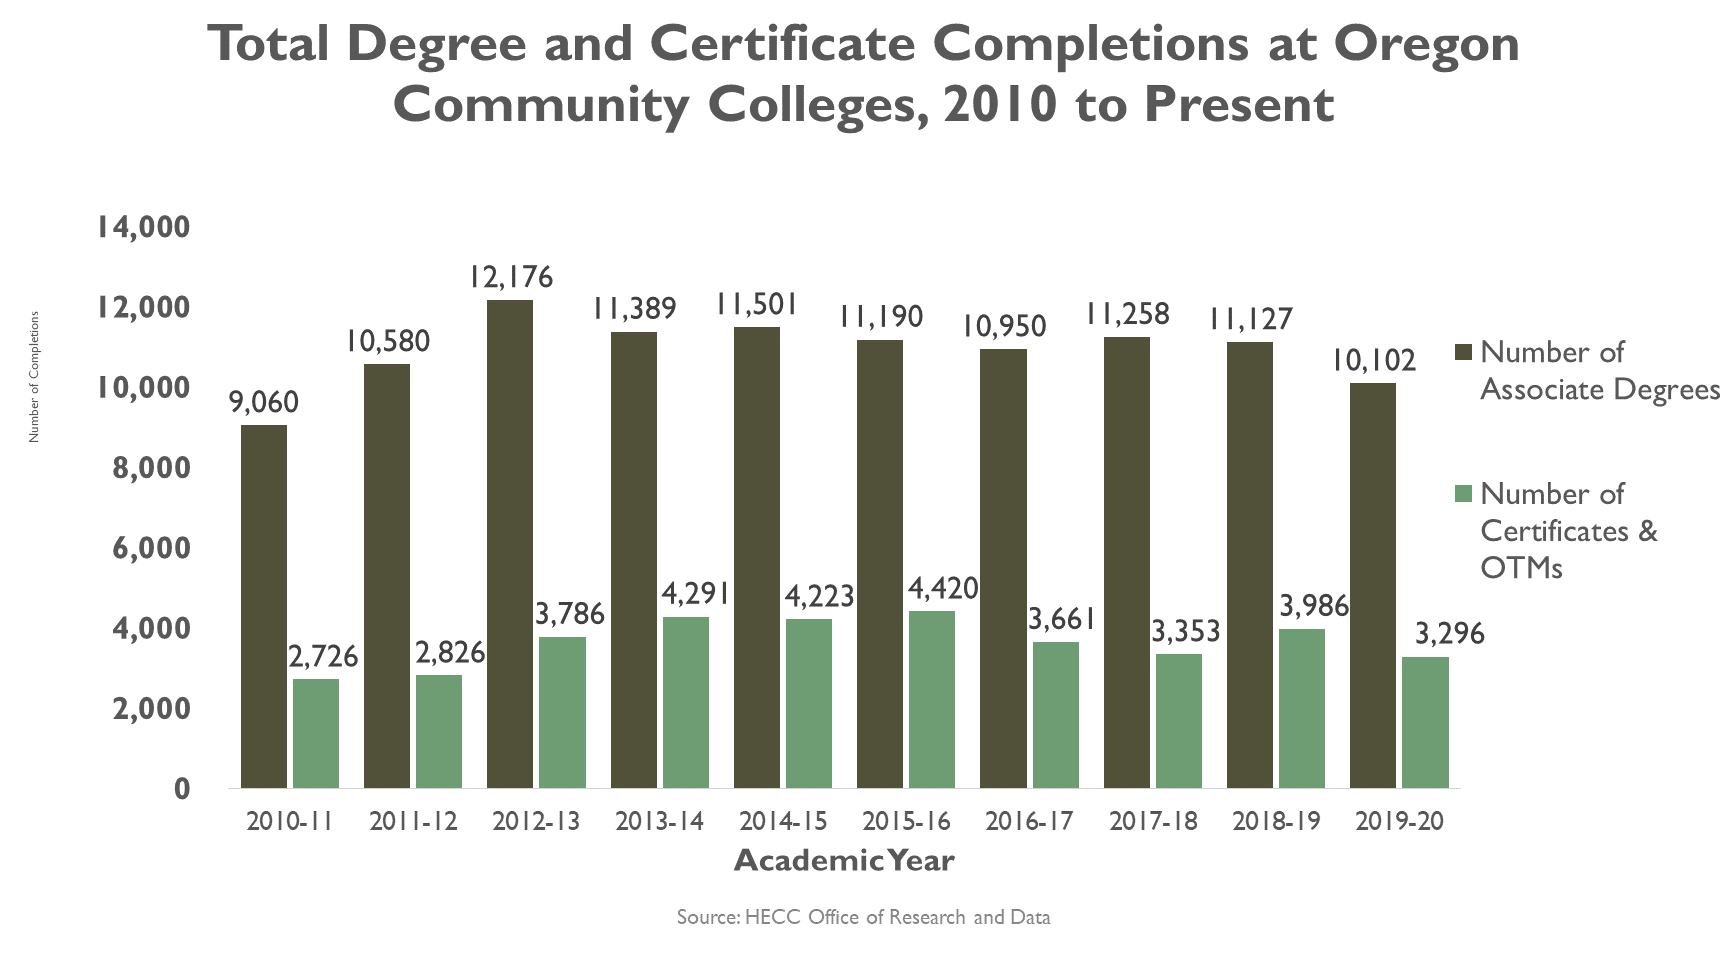 Graphic, Line graph, Total degree and certificate completion at Oregon community colleges, 2006-present